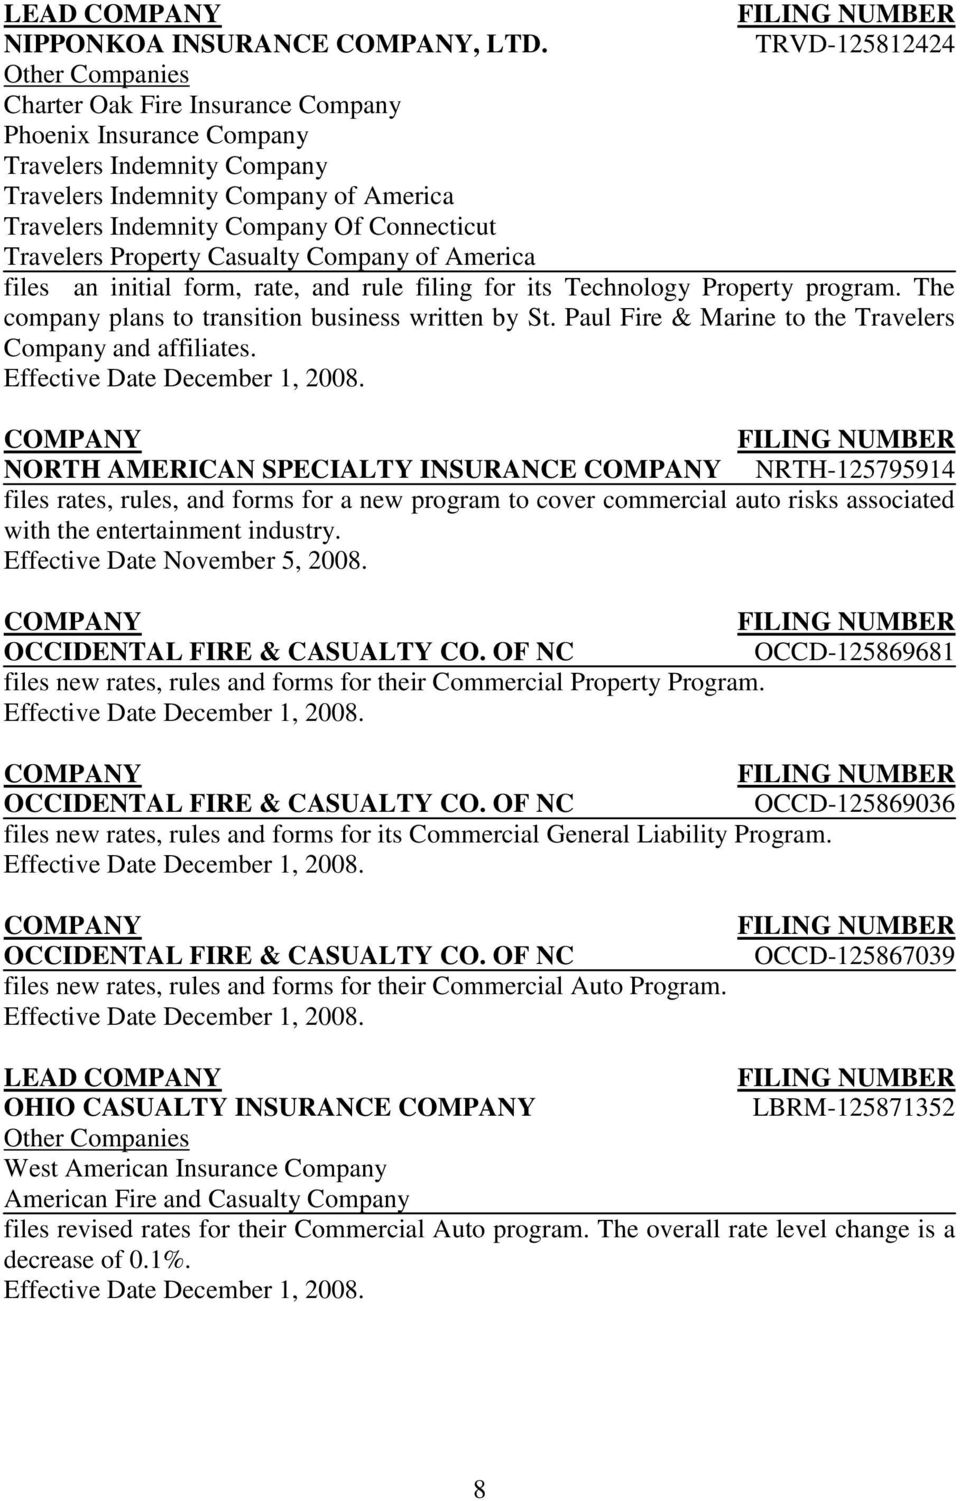 Property Casualty Company of America files an initial form, rate, and rule filing for its Technology Property program. The company plans to transition business written by St.